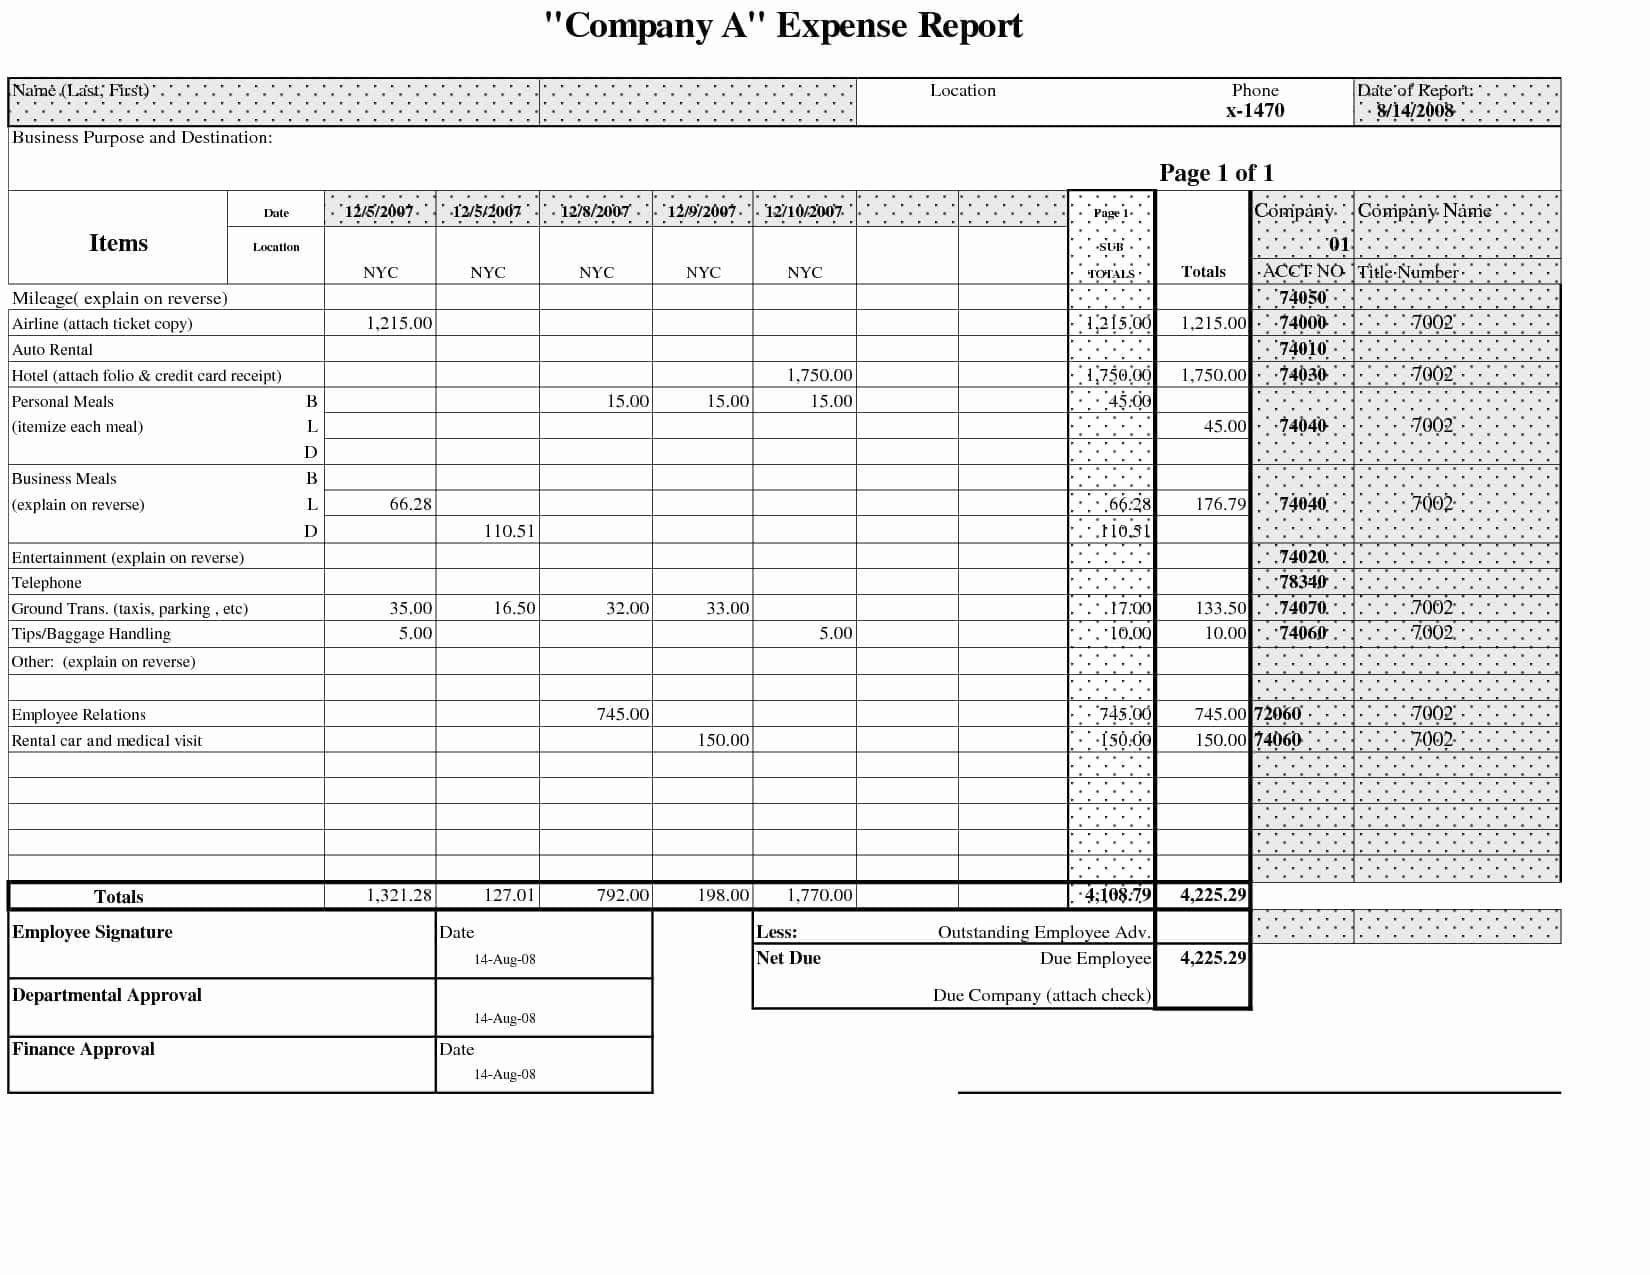 Travel Expense Report Template Excel   Durun.ugrasgrup With Business Travel Expense Report Template